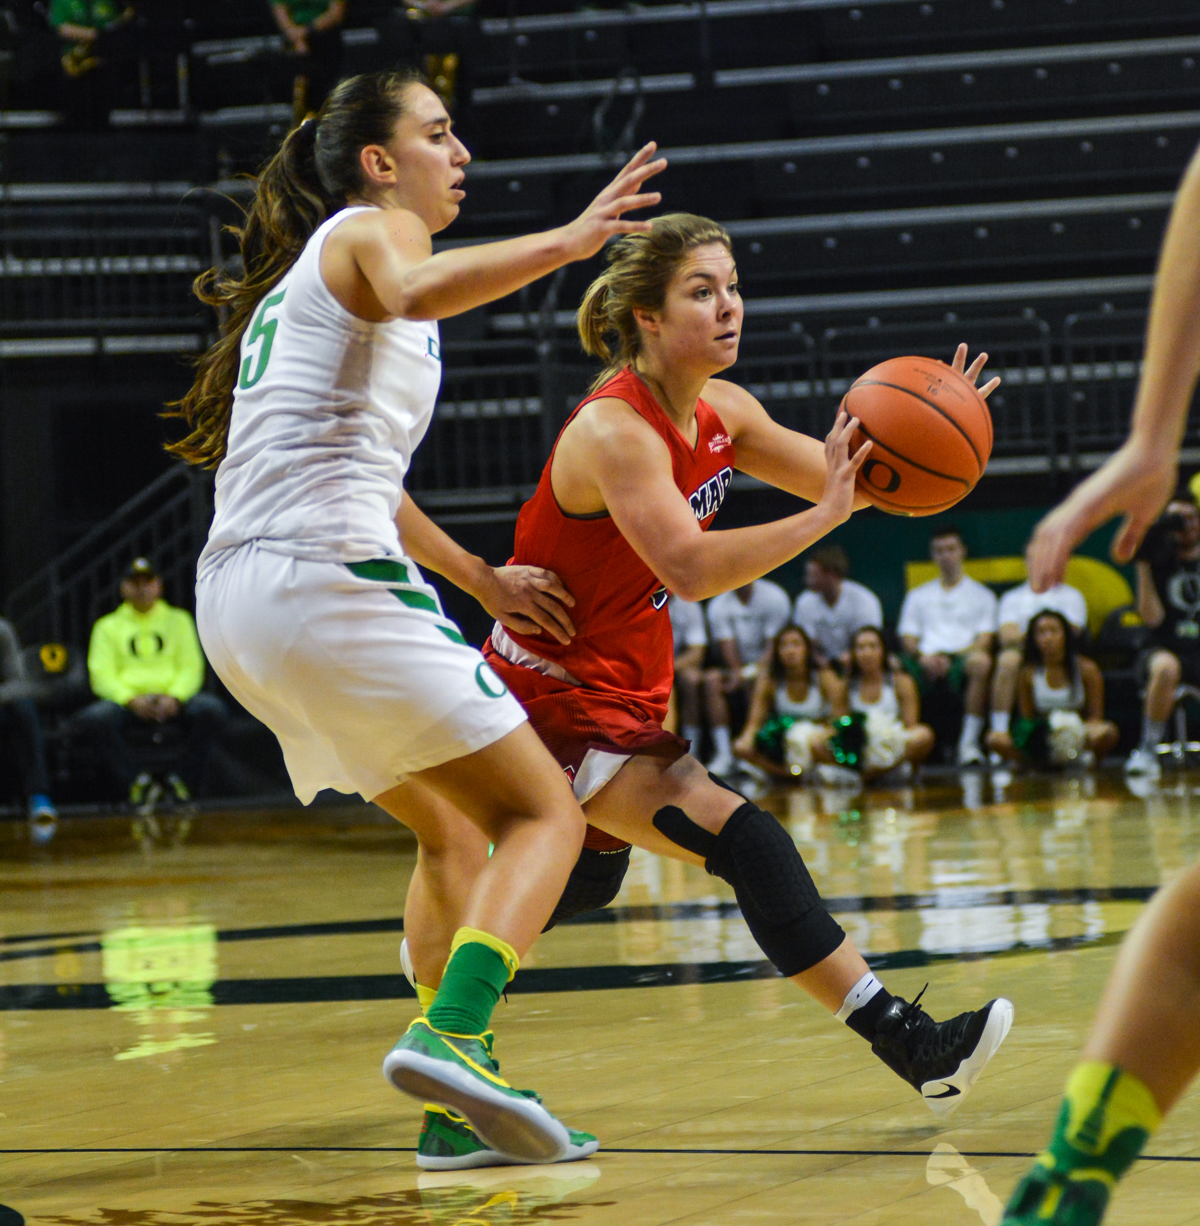 Cardinals Baileigh O'Dell (#5) passes the ball to a teammate. The Oregon Ducks women's basketball team won their season opener against the Lamar Cardinals 84-67. Photo by Jacob Smith, Oregon News Lab